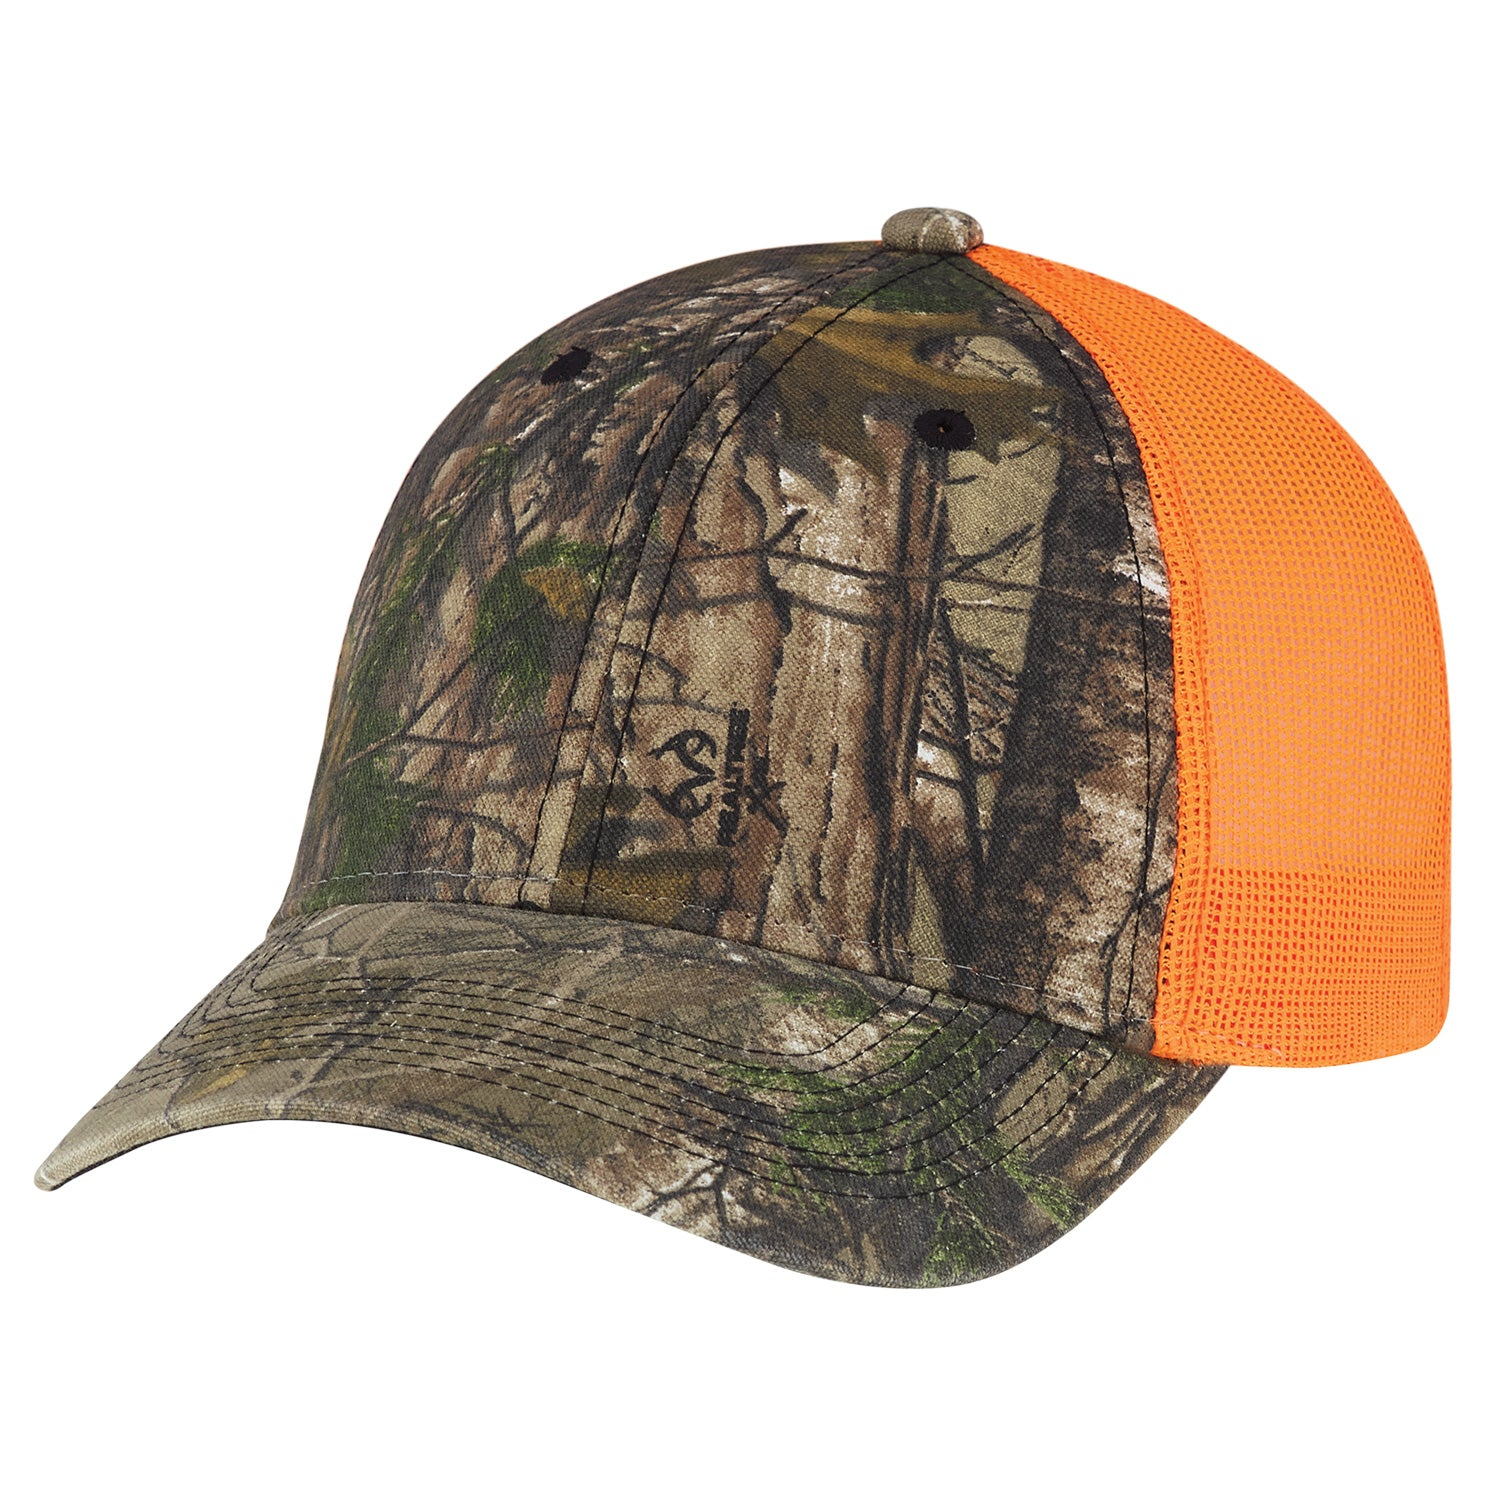 AJM CAMO ENZYME WASHED BRUSHED POLYCOTTON/SOFT NYLON MESH HAT